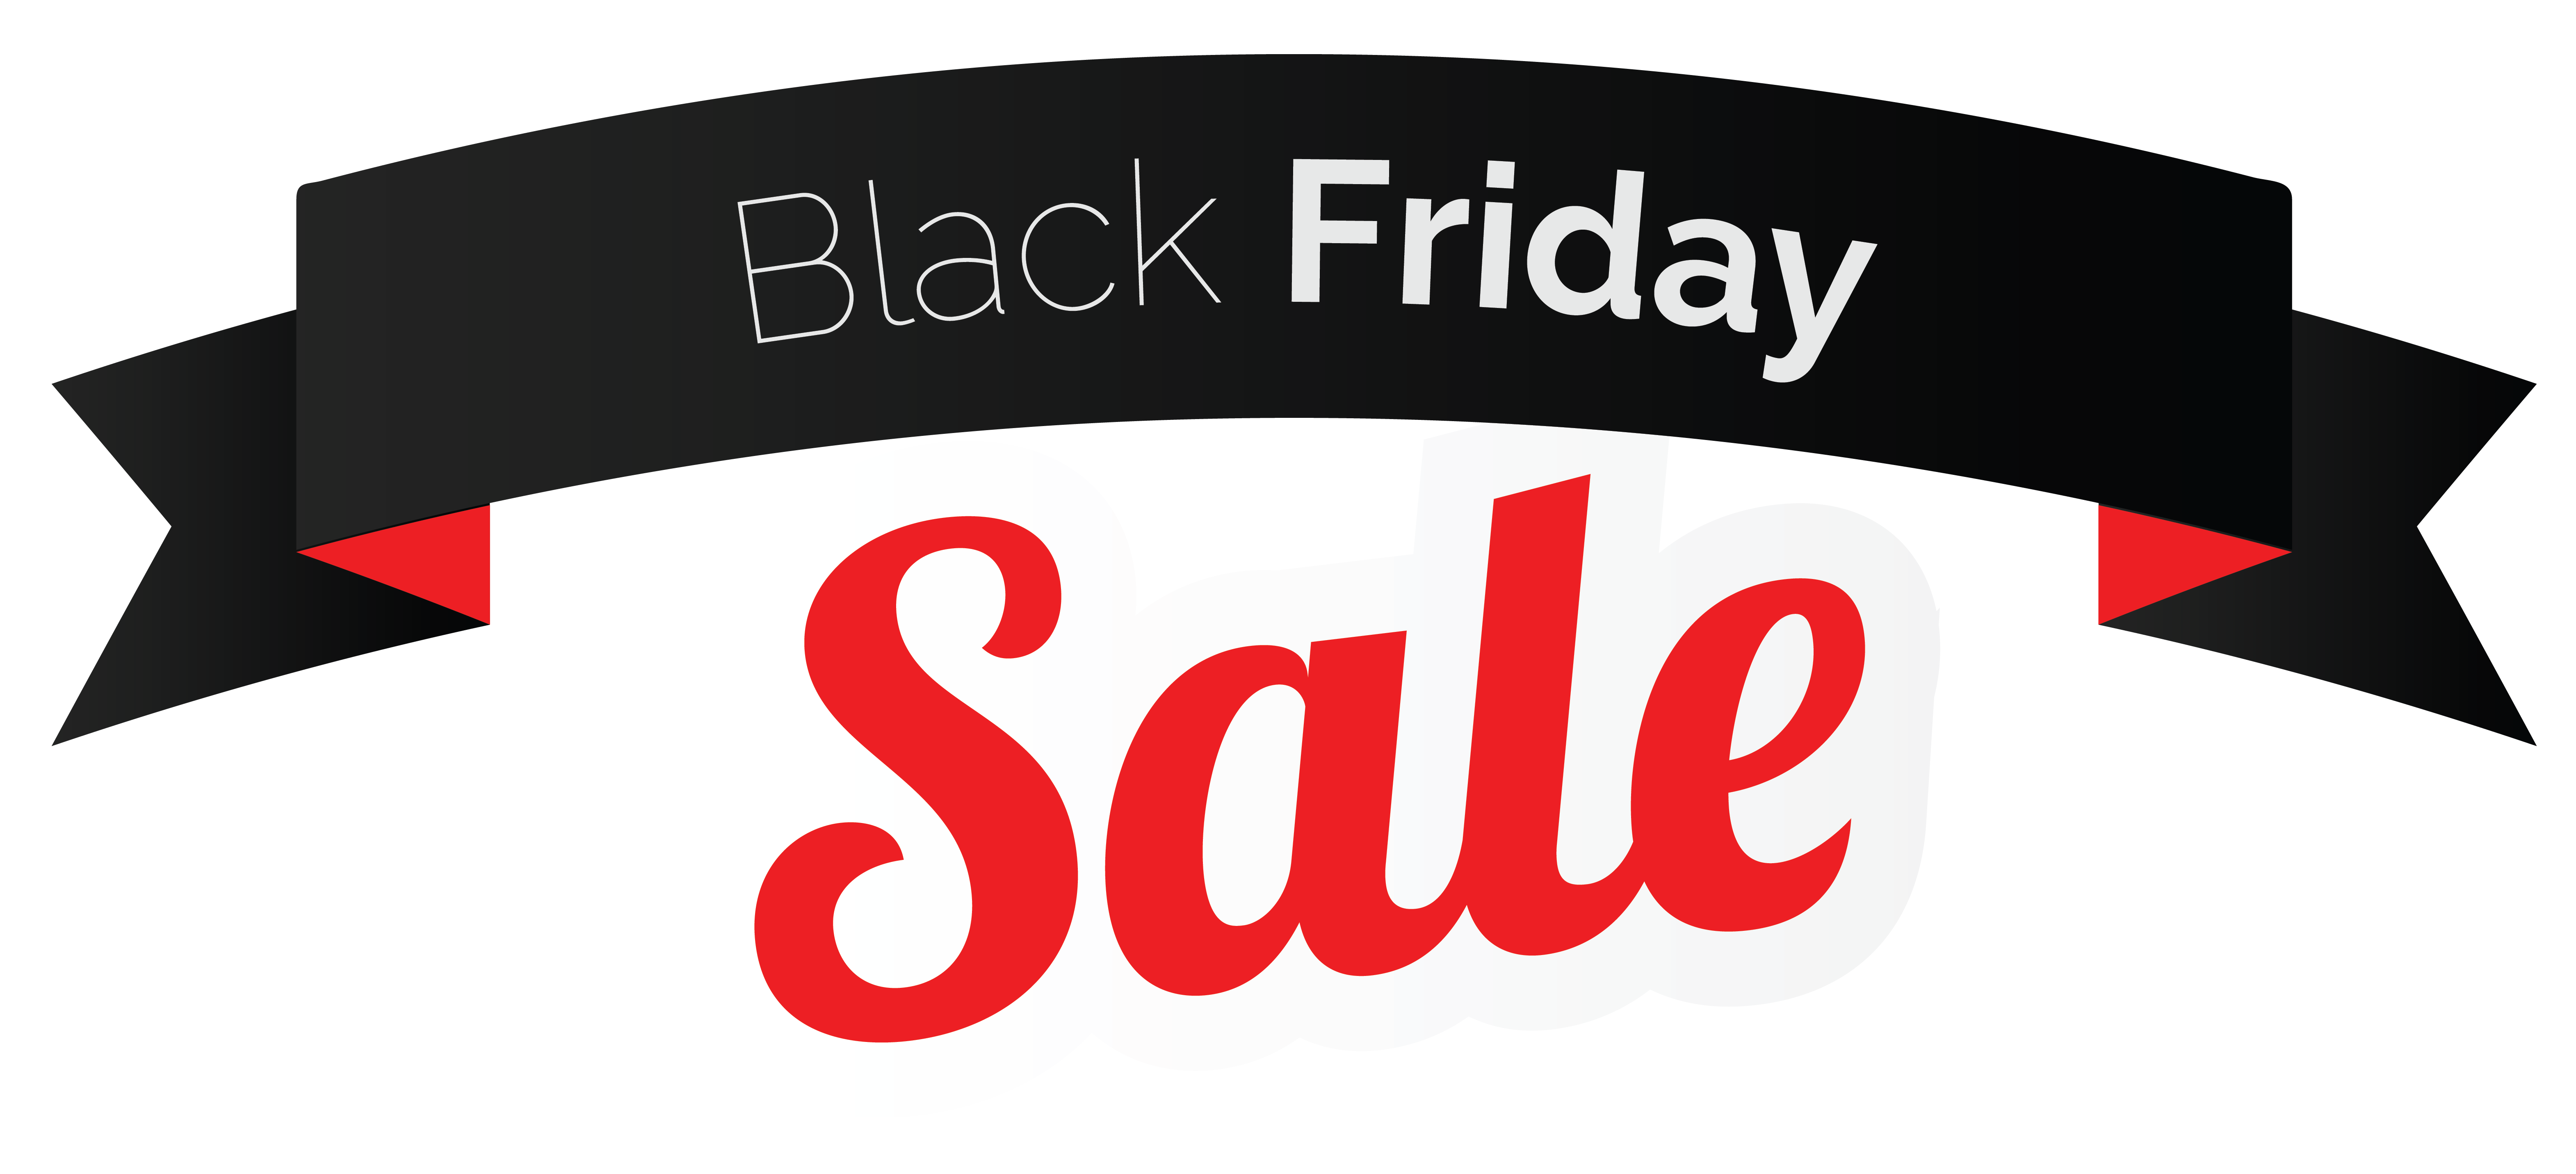 Black friday png. Sale banner clipart image